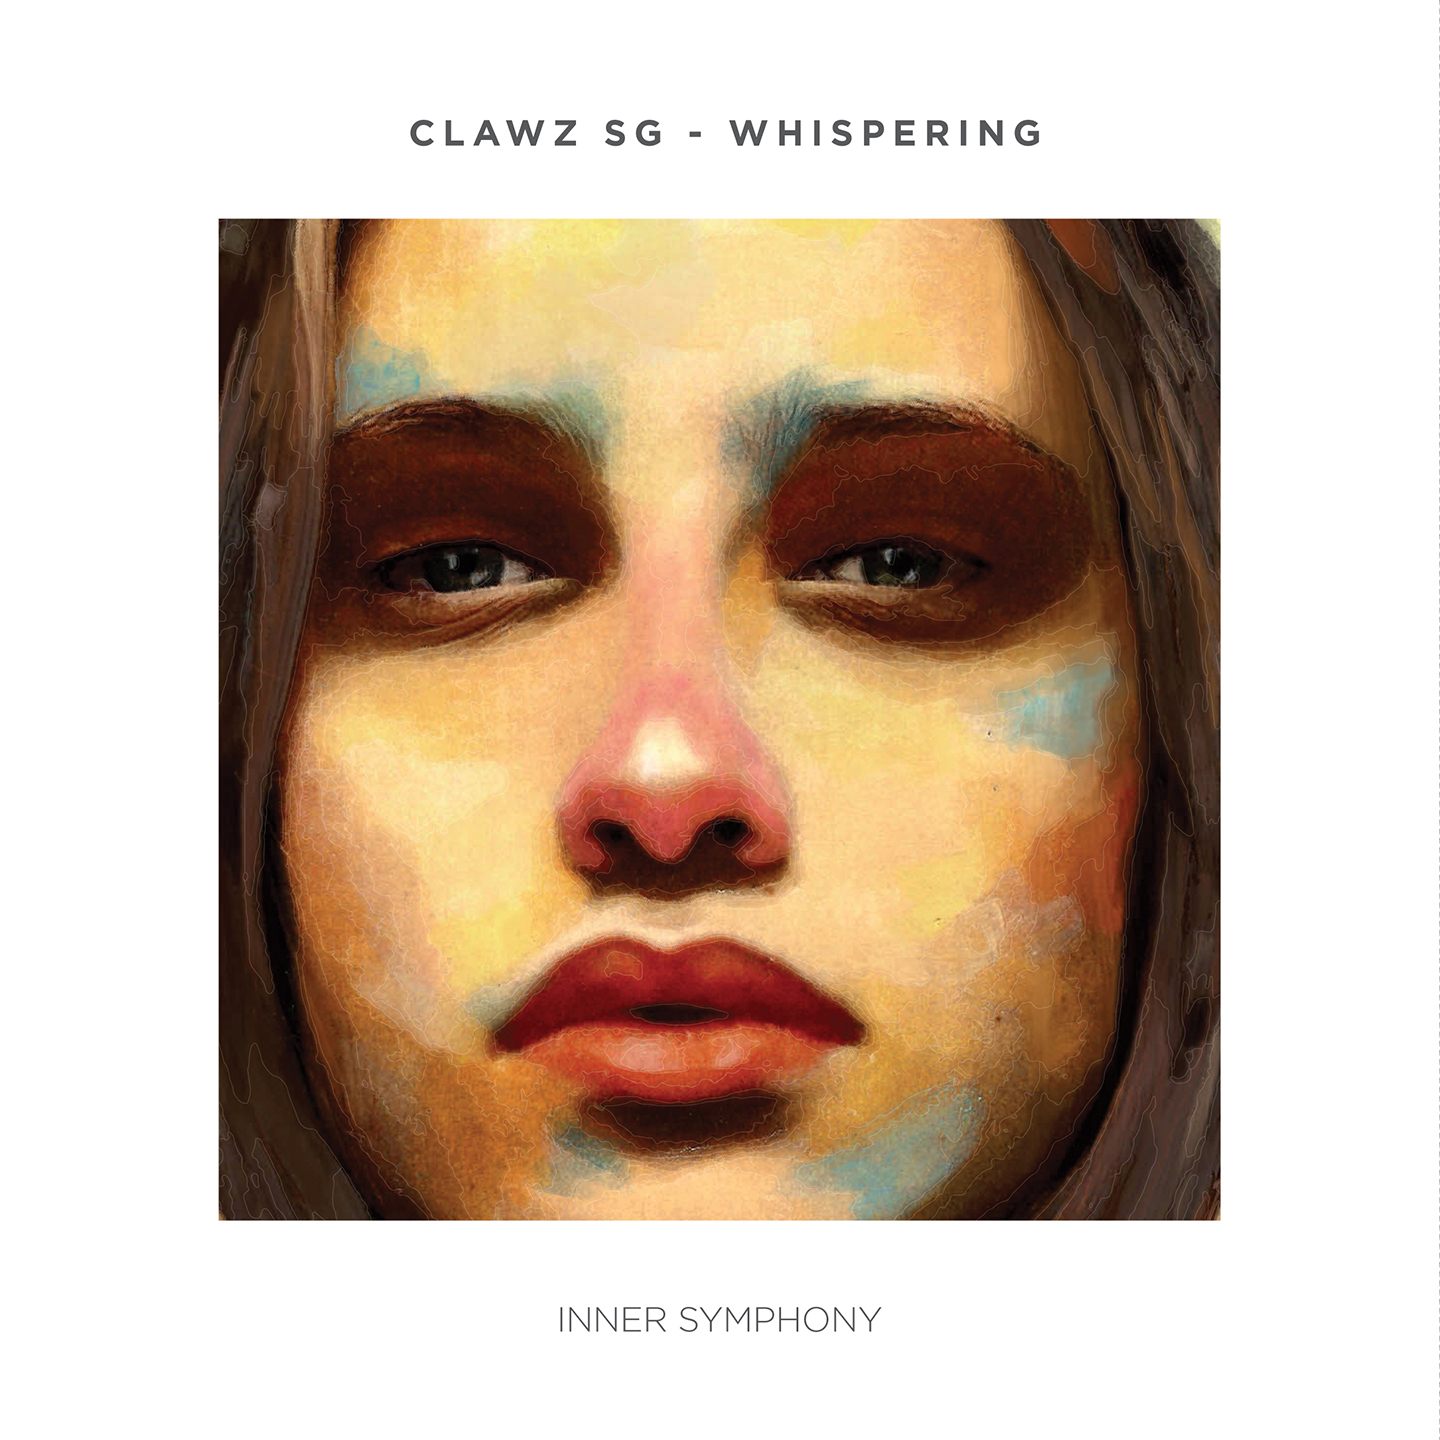 IS011 Clawz SG Whispering - Inner Symphony